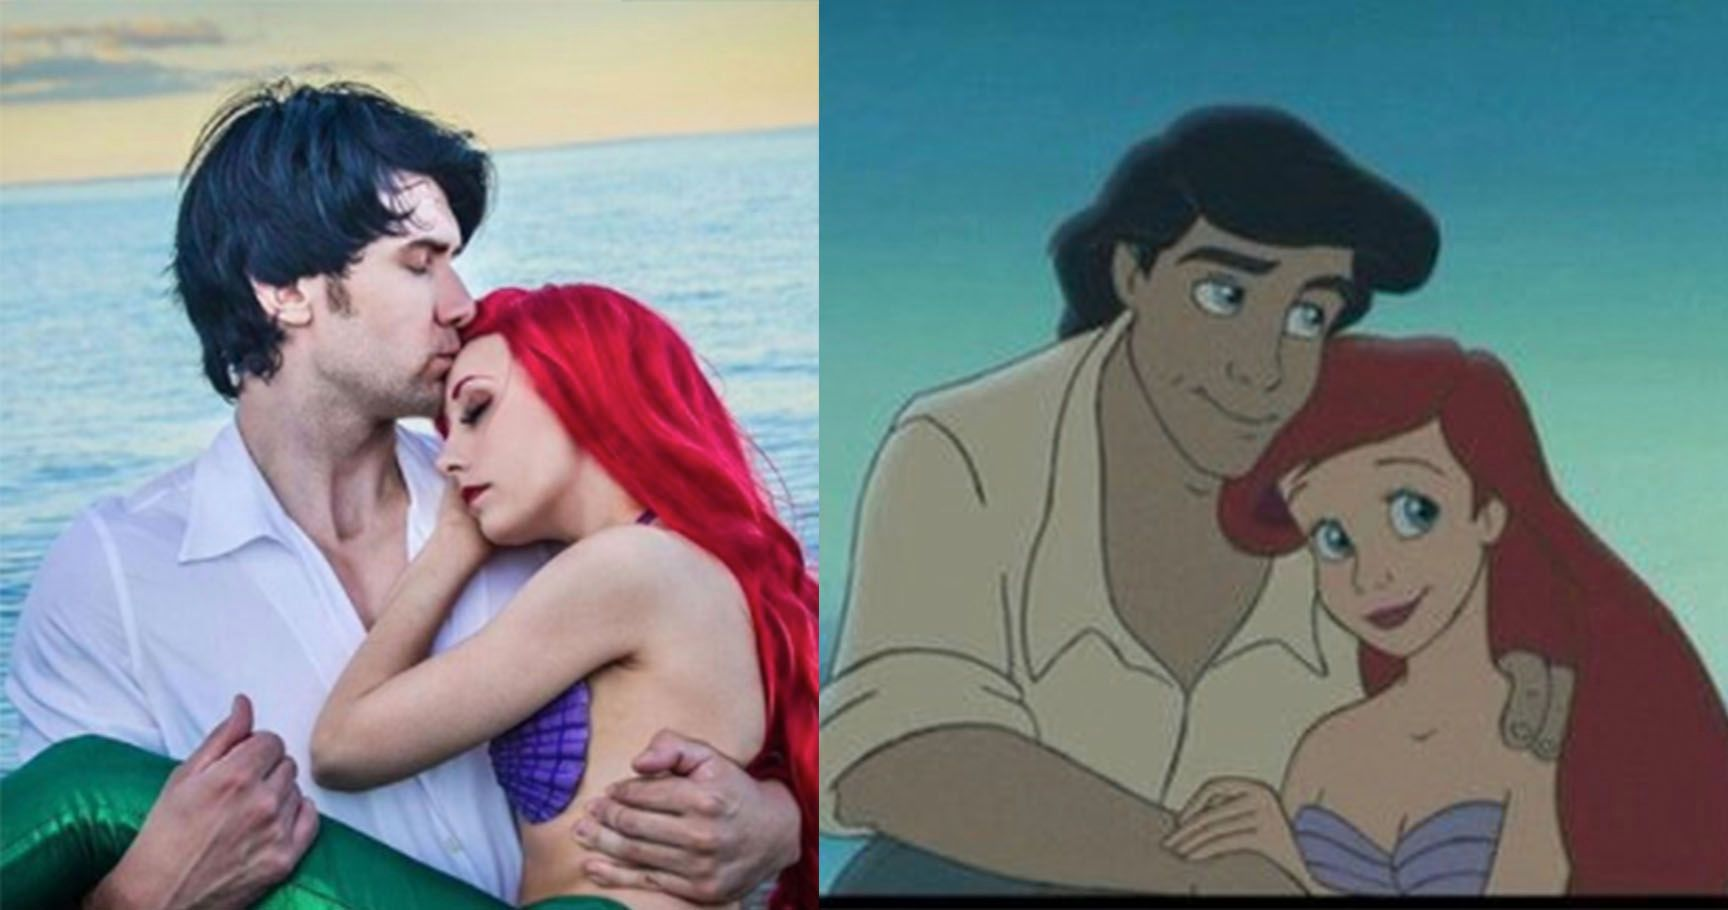 15 Jaw-Dropping Disney Cosplays That Bring The Movies To Life